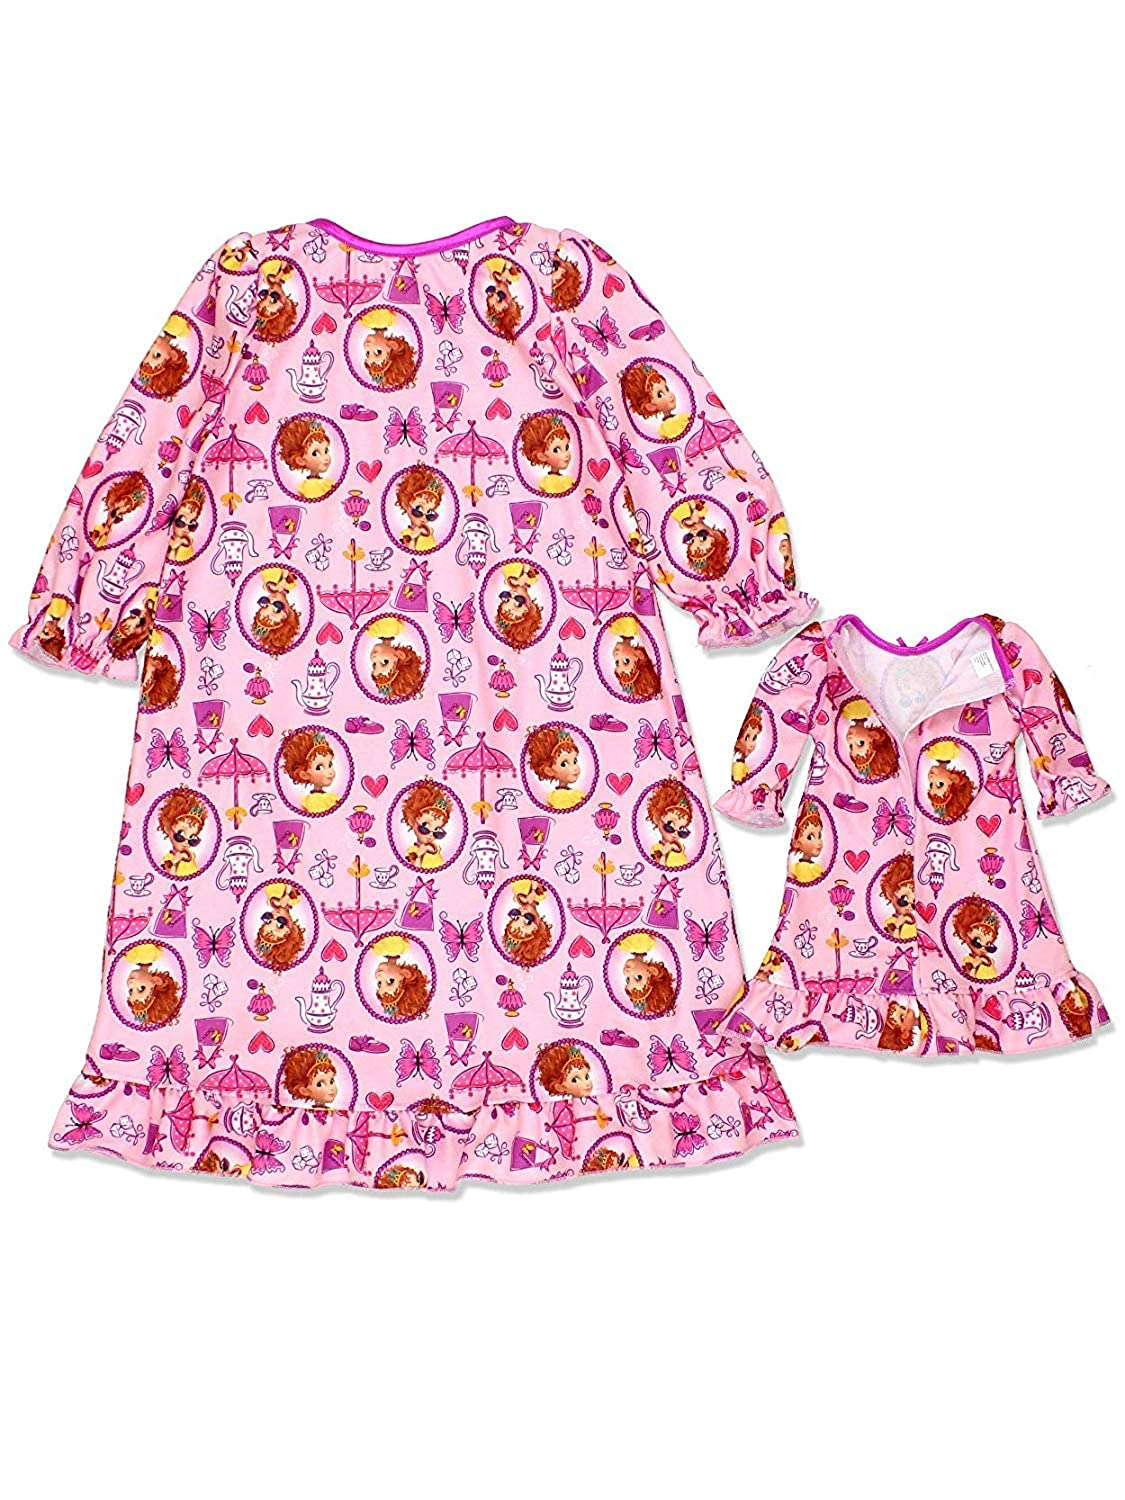 0a9bcd057dc8 Amazon.com  Fancy Nancy Toddler Girls Flannel Granny Gown Nightgown ...